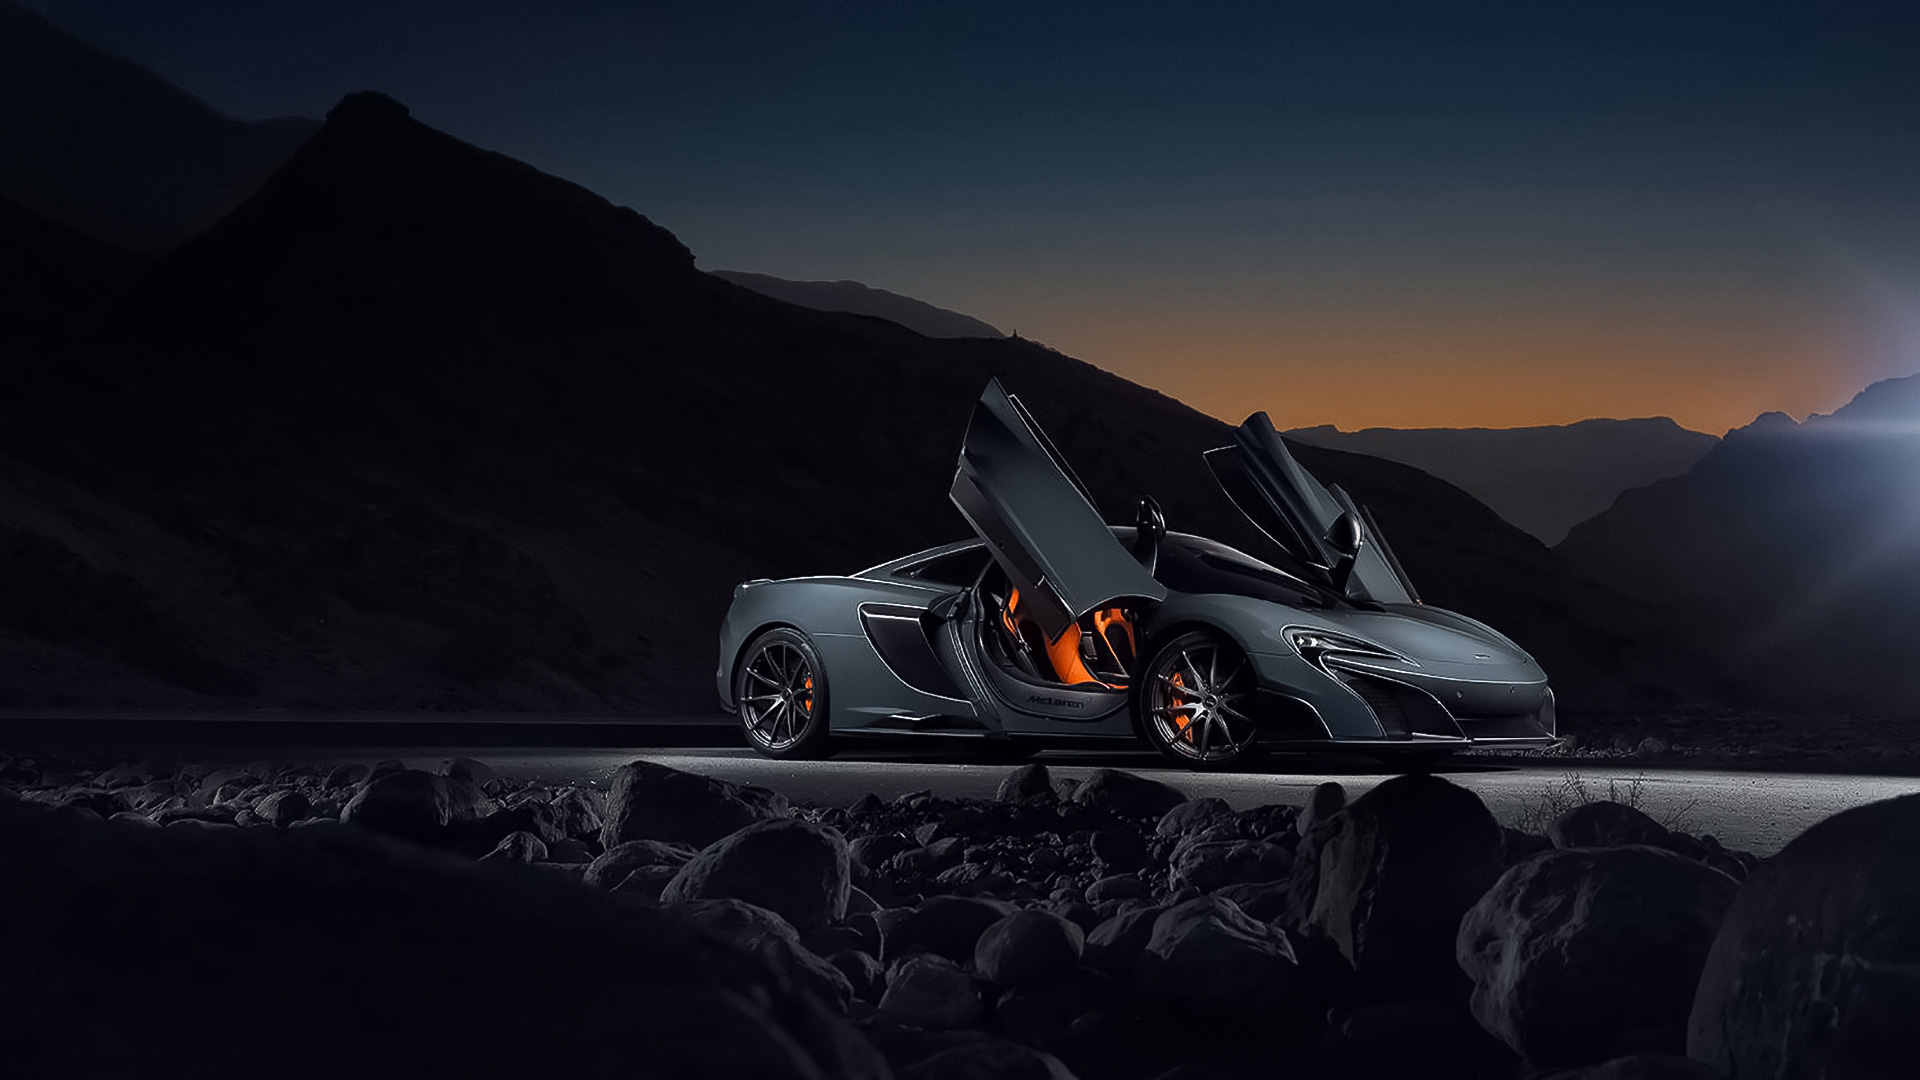 Mclaren Supercar Wallpaper Hd Car Wallpapers